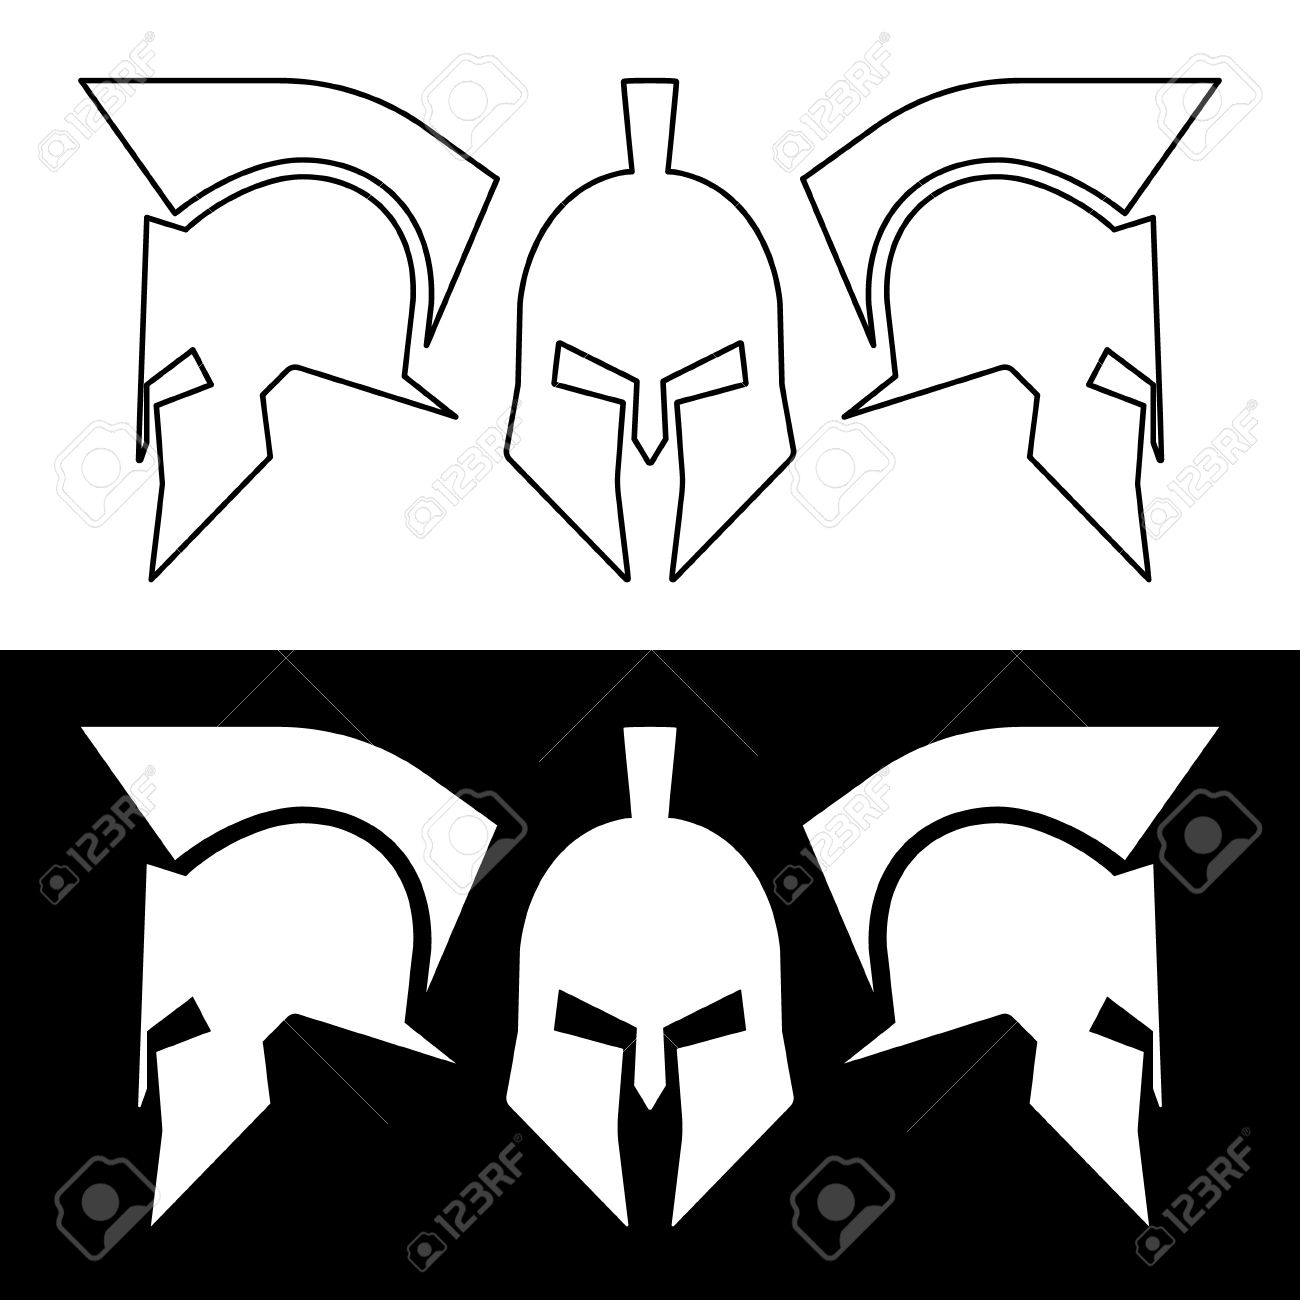 ancient roman or greek helmet helmets front and side view silhouette line design - Ancient Rome Designs